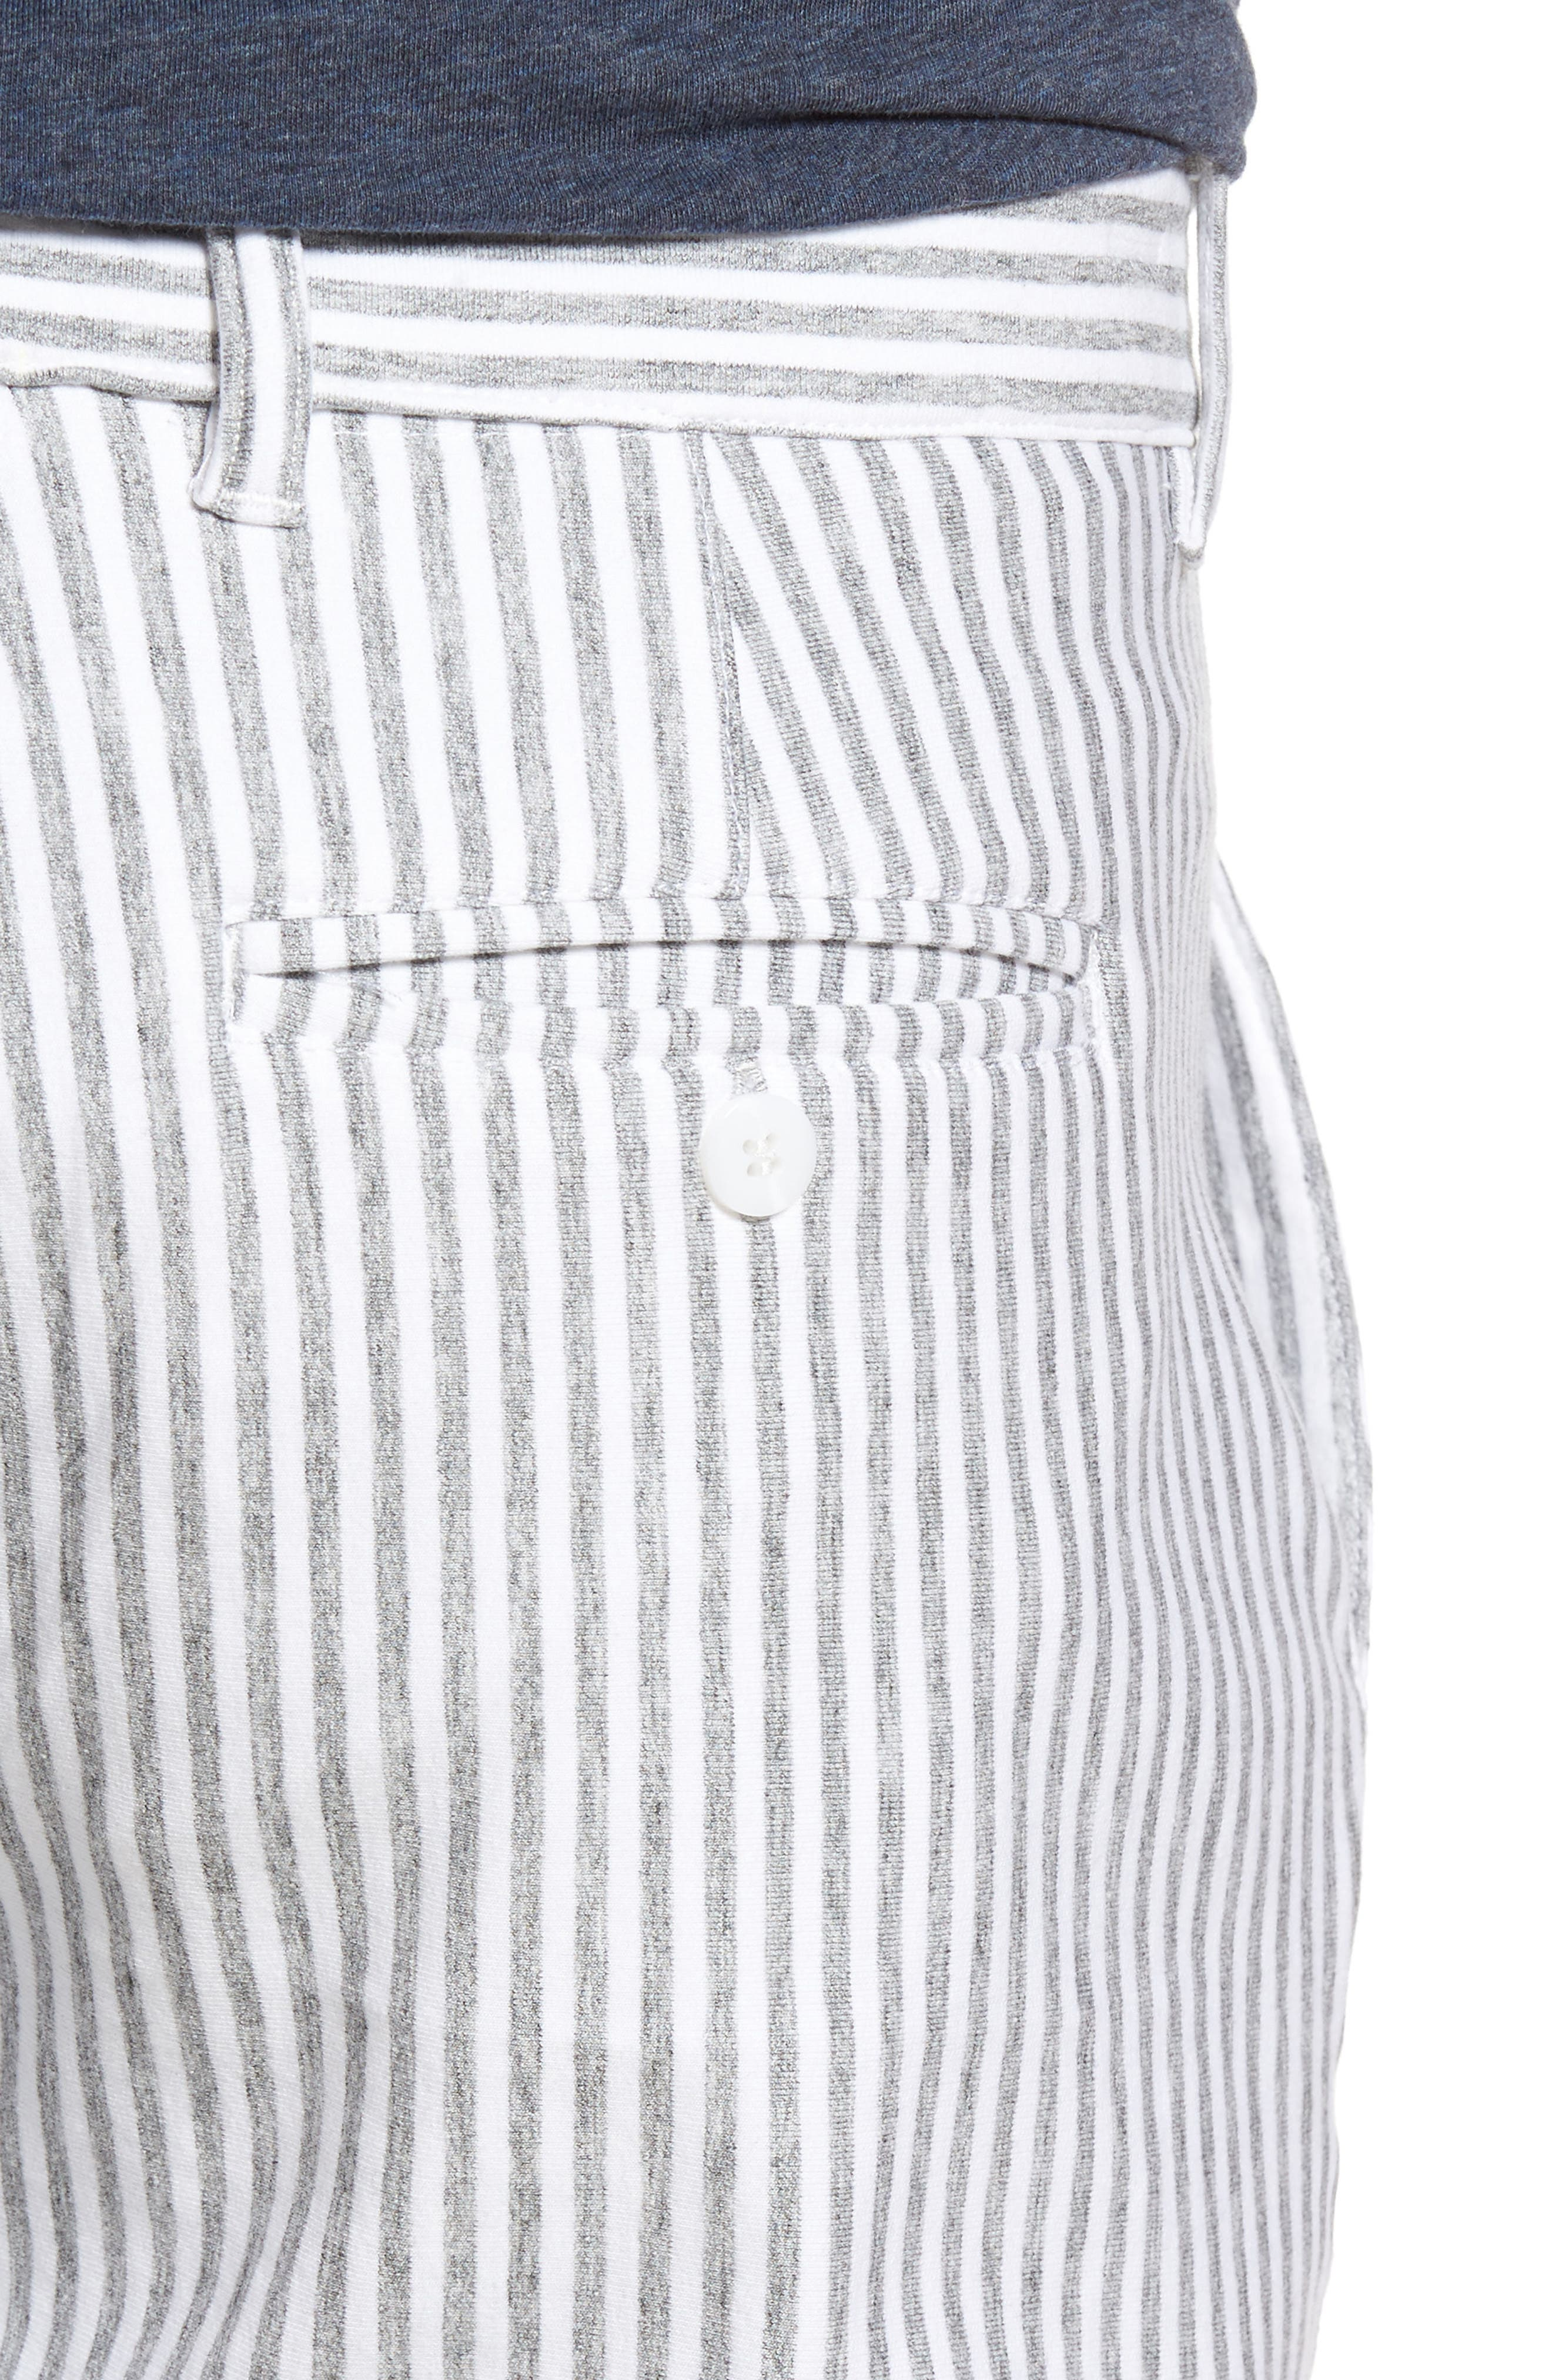 Stripe French Terry Shorts,                             Alternate thumbnail 4, color,                             036